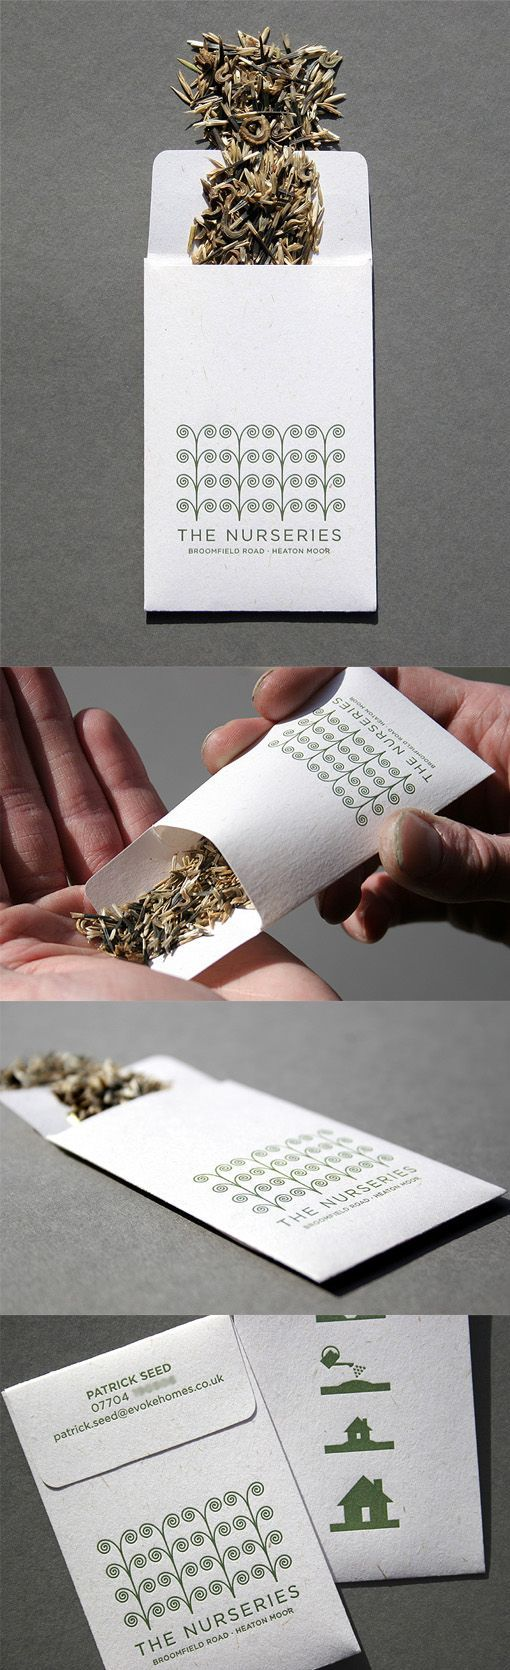 Clever Letterpress Printed Seed Packet Business Card Concept Uniquebusinesscards